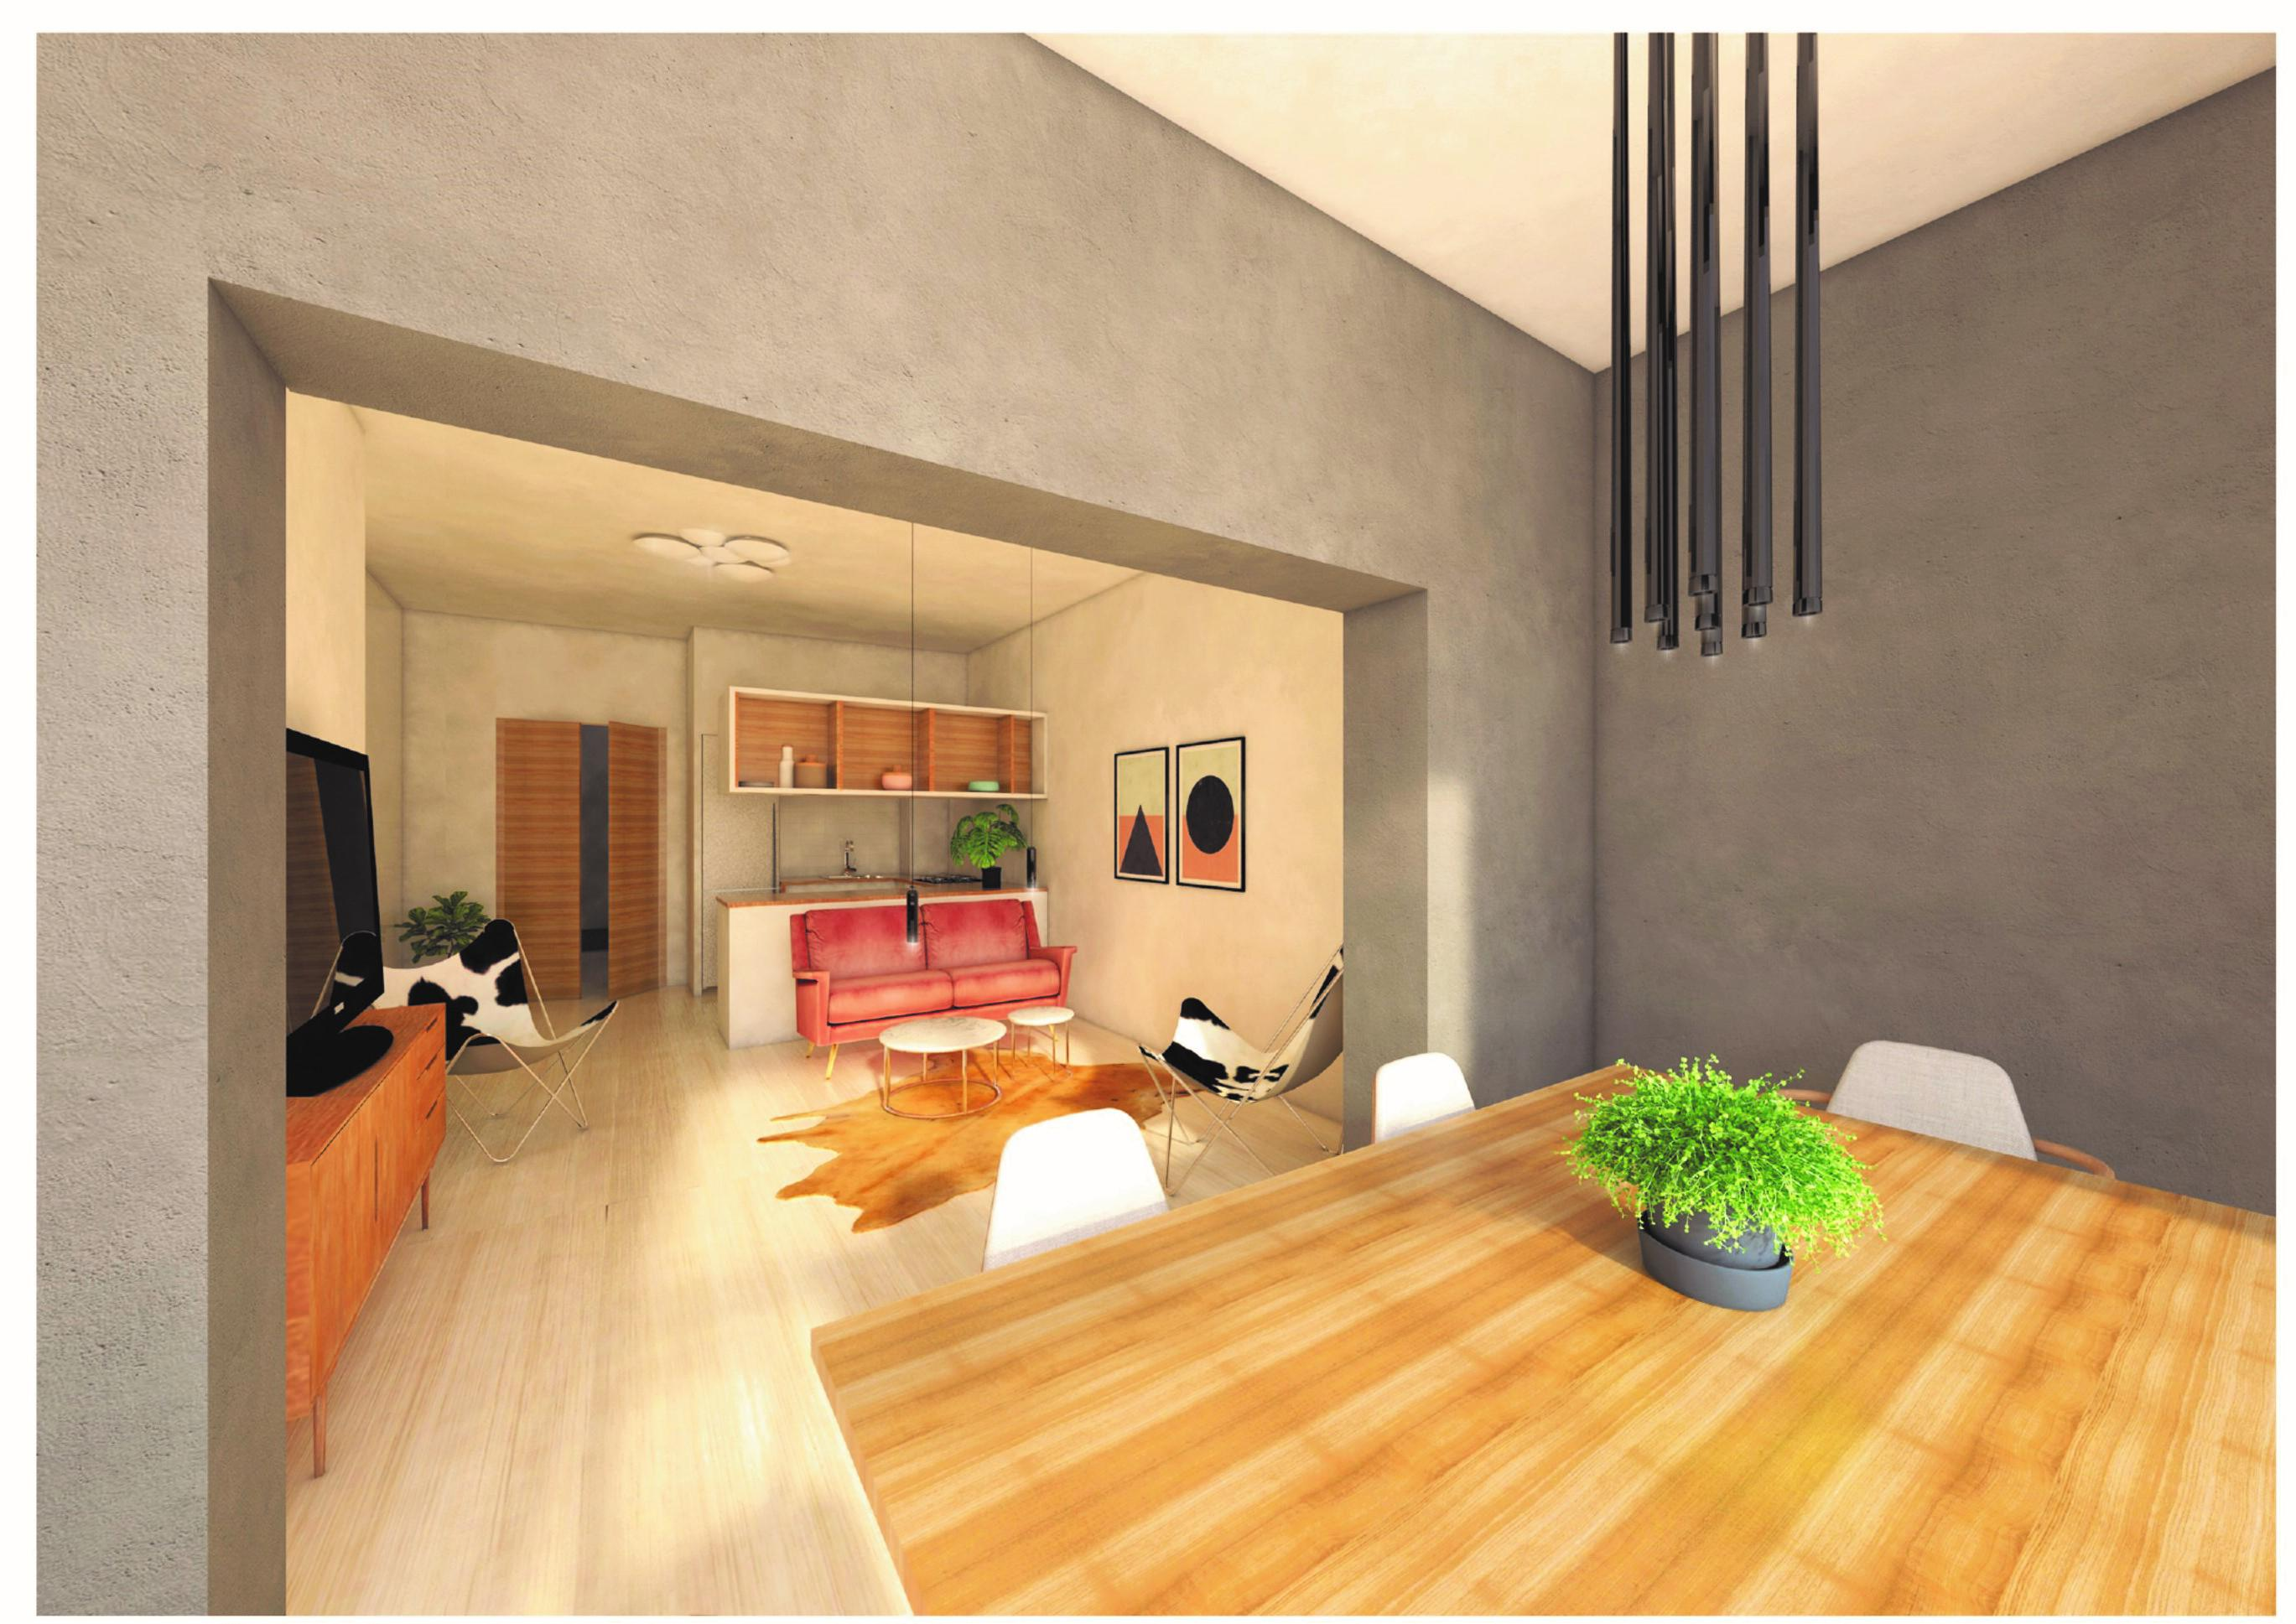 220652 Apartment for sale in Sarrià-Sant Gervasi, Sant Gervasi-Galvany 13